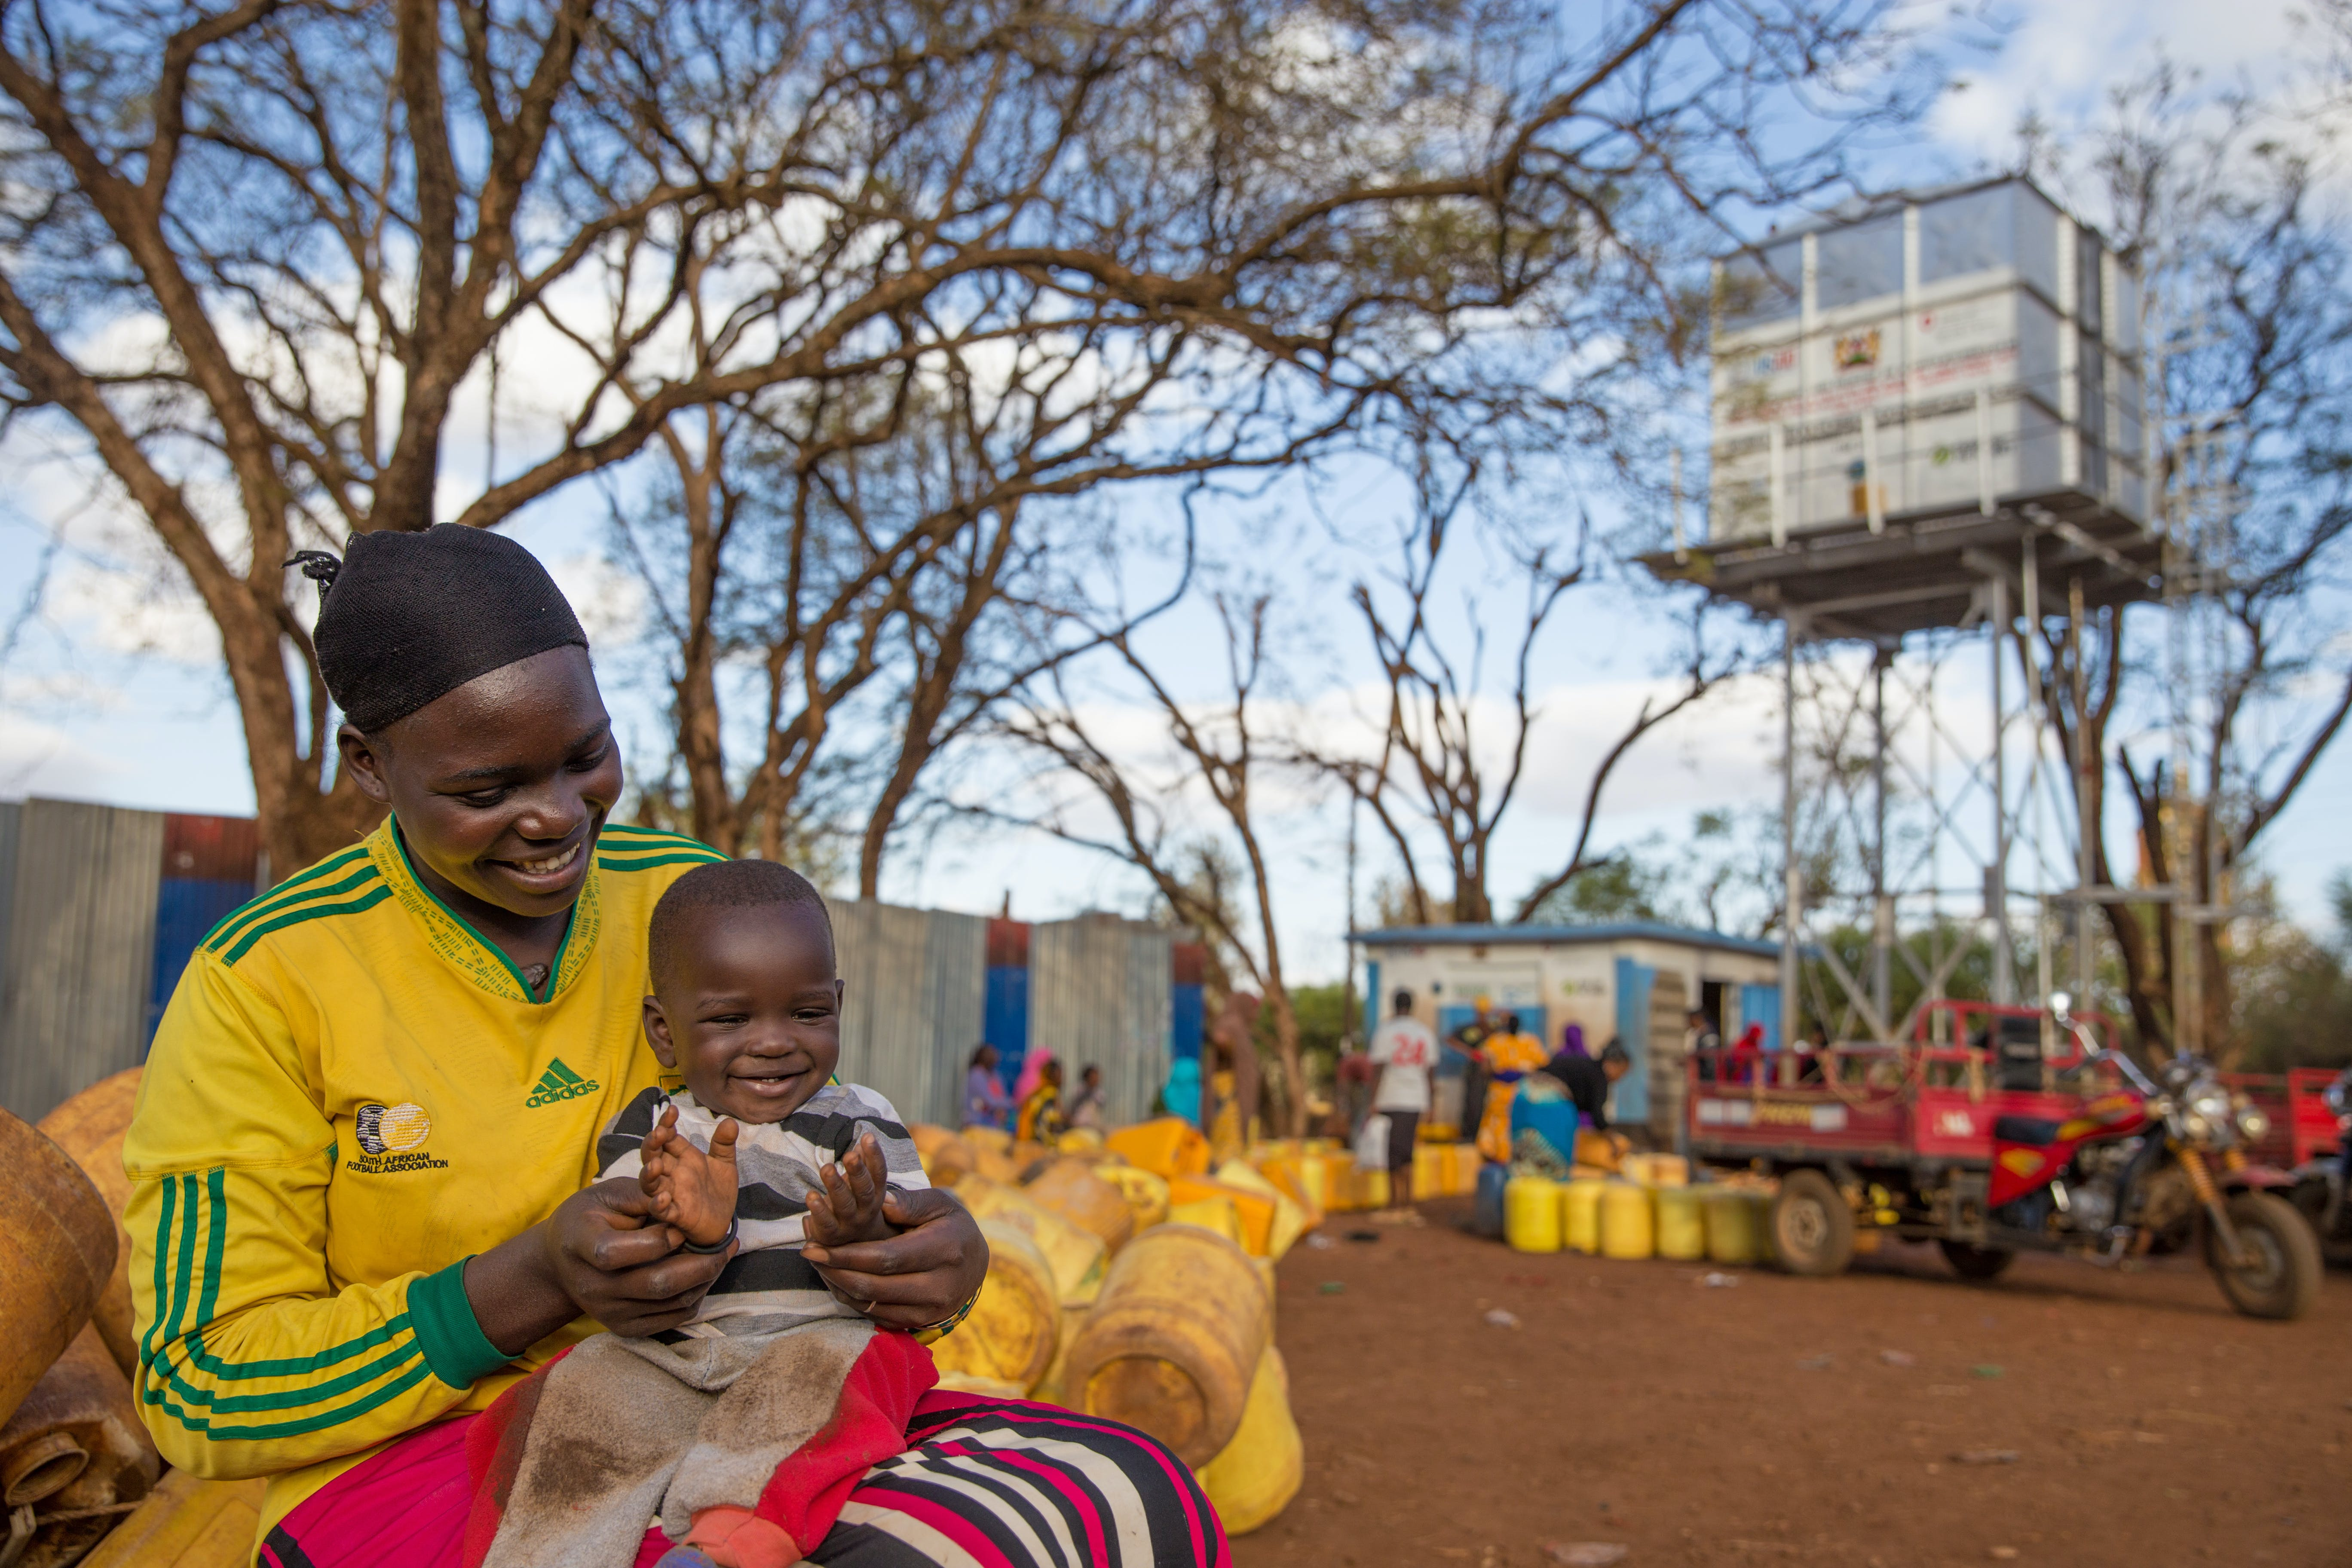 A woman holds her baby boy, in front of an innovative kiosk bring clean water in Kenya